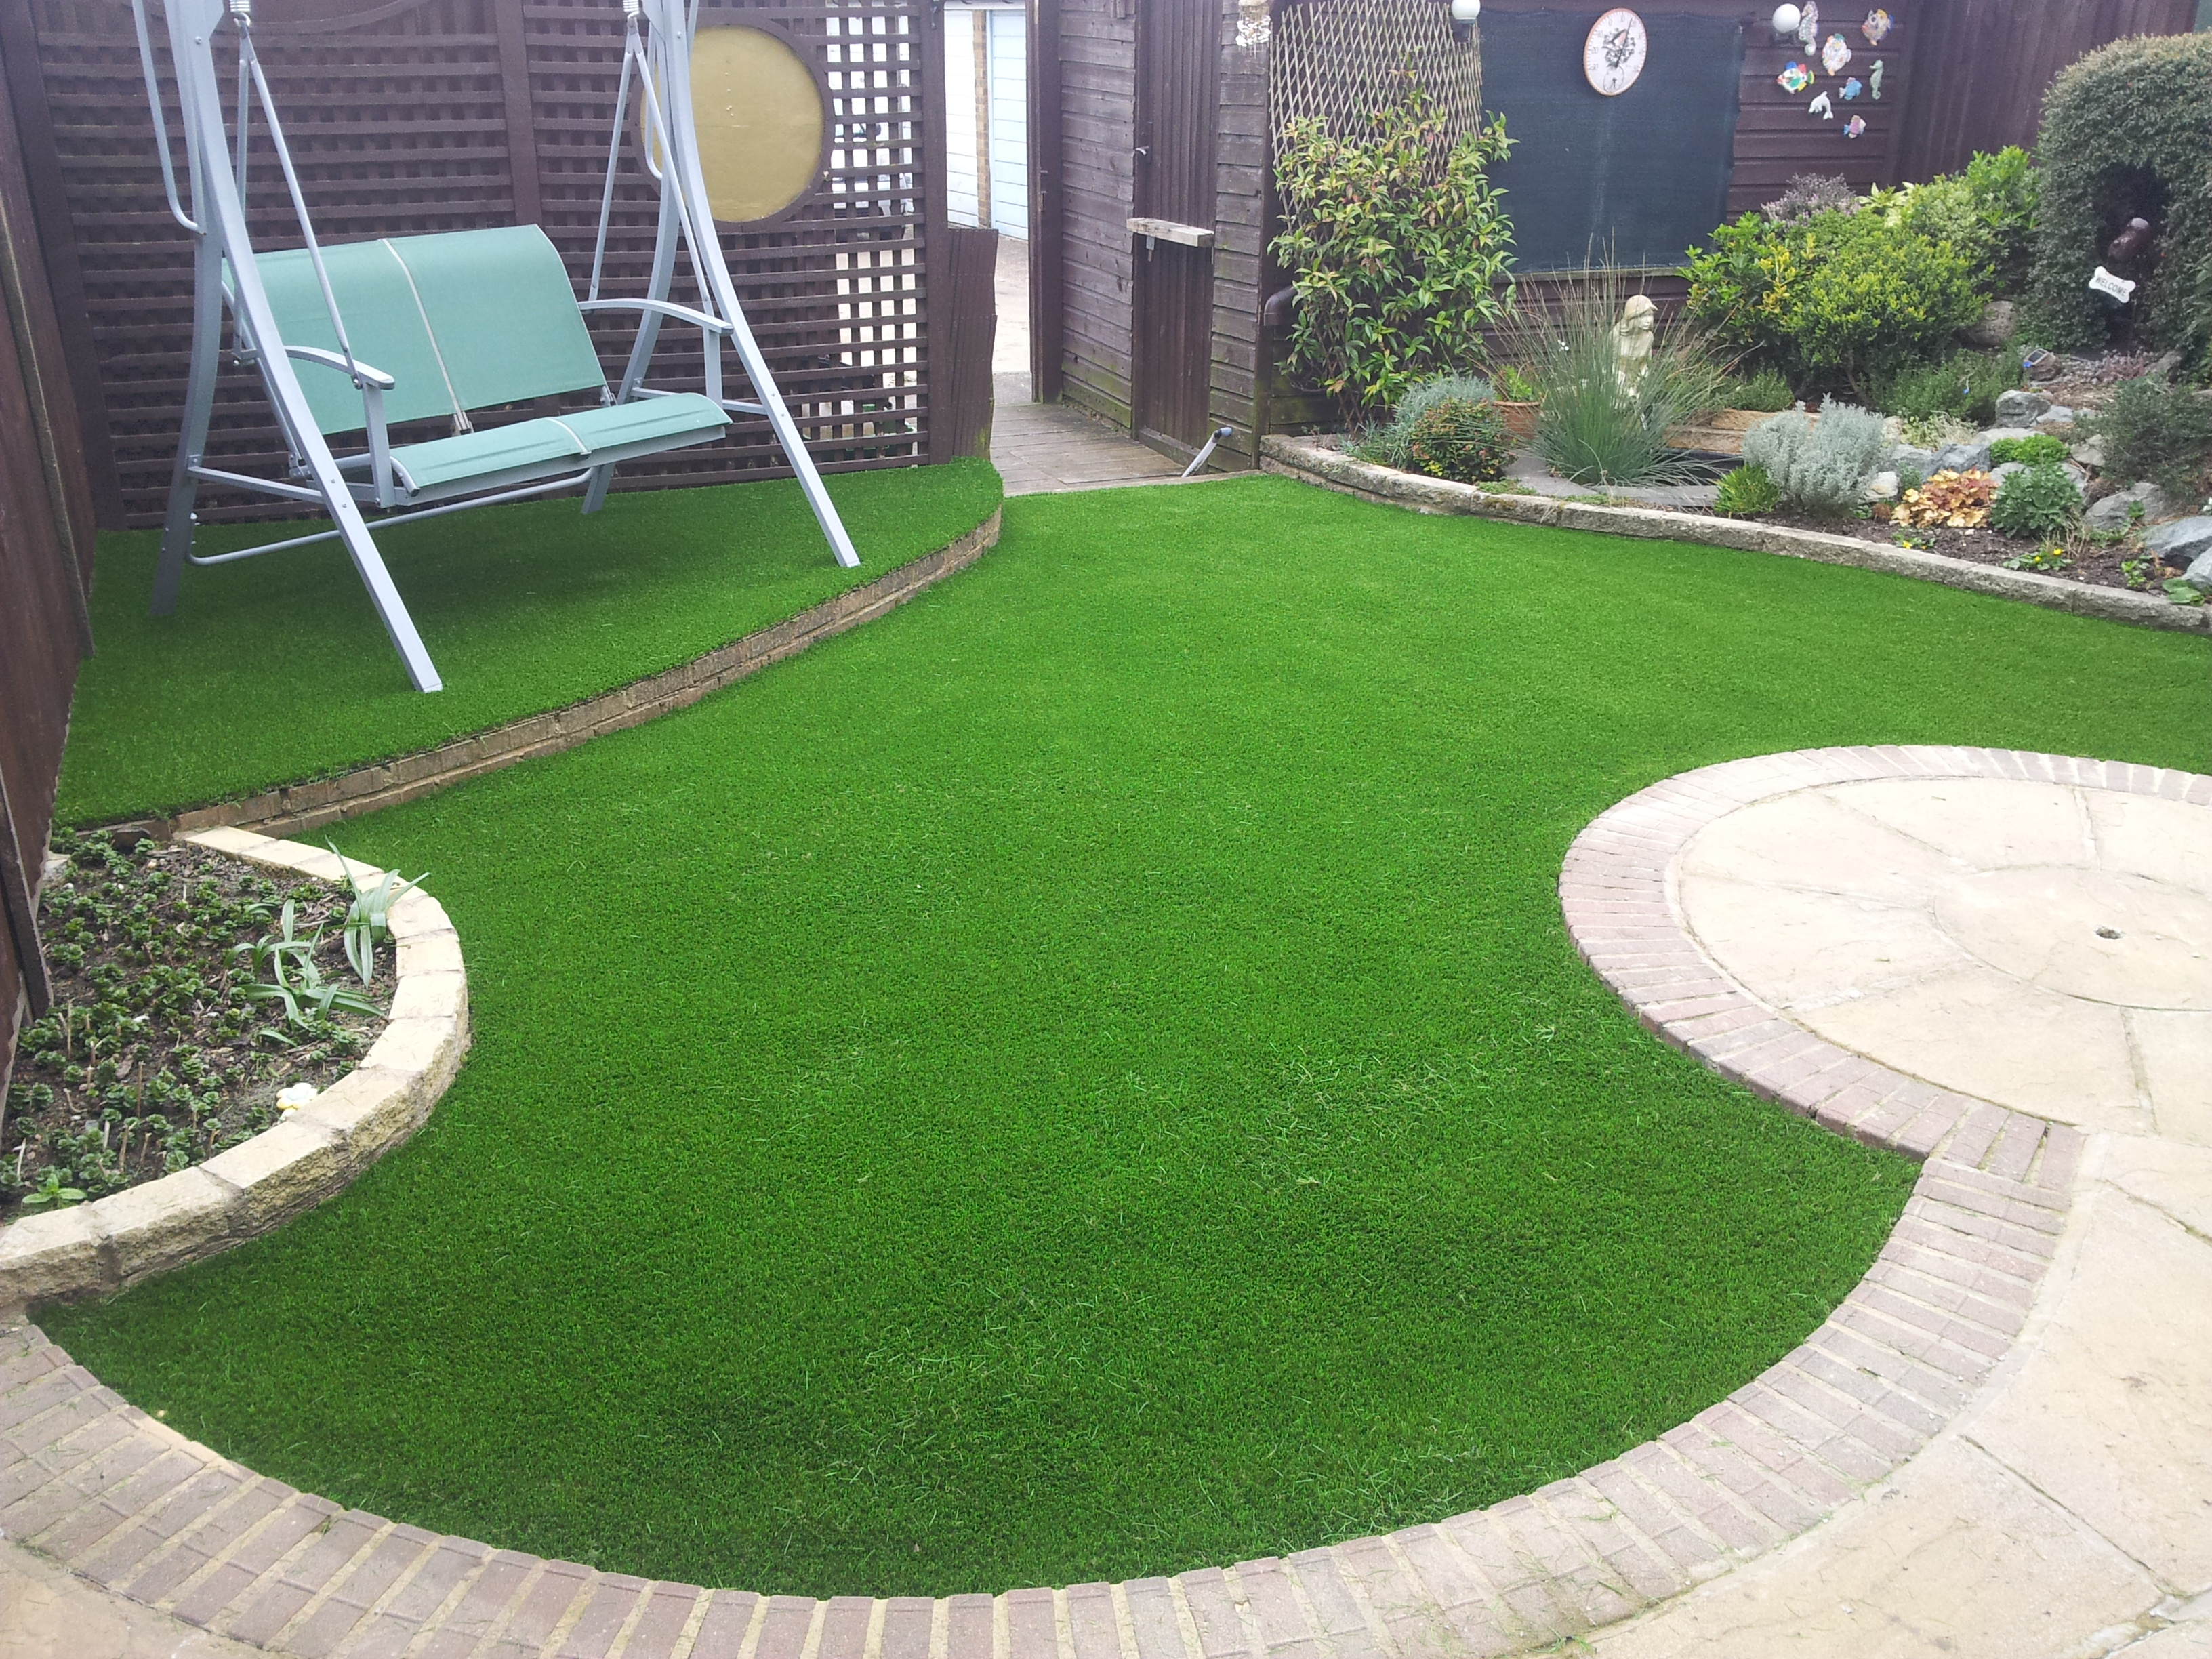 Image result for artificial grass on concrete